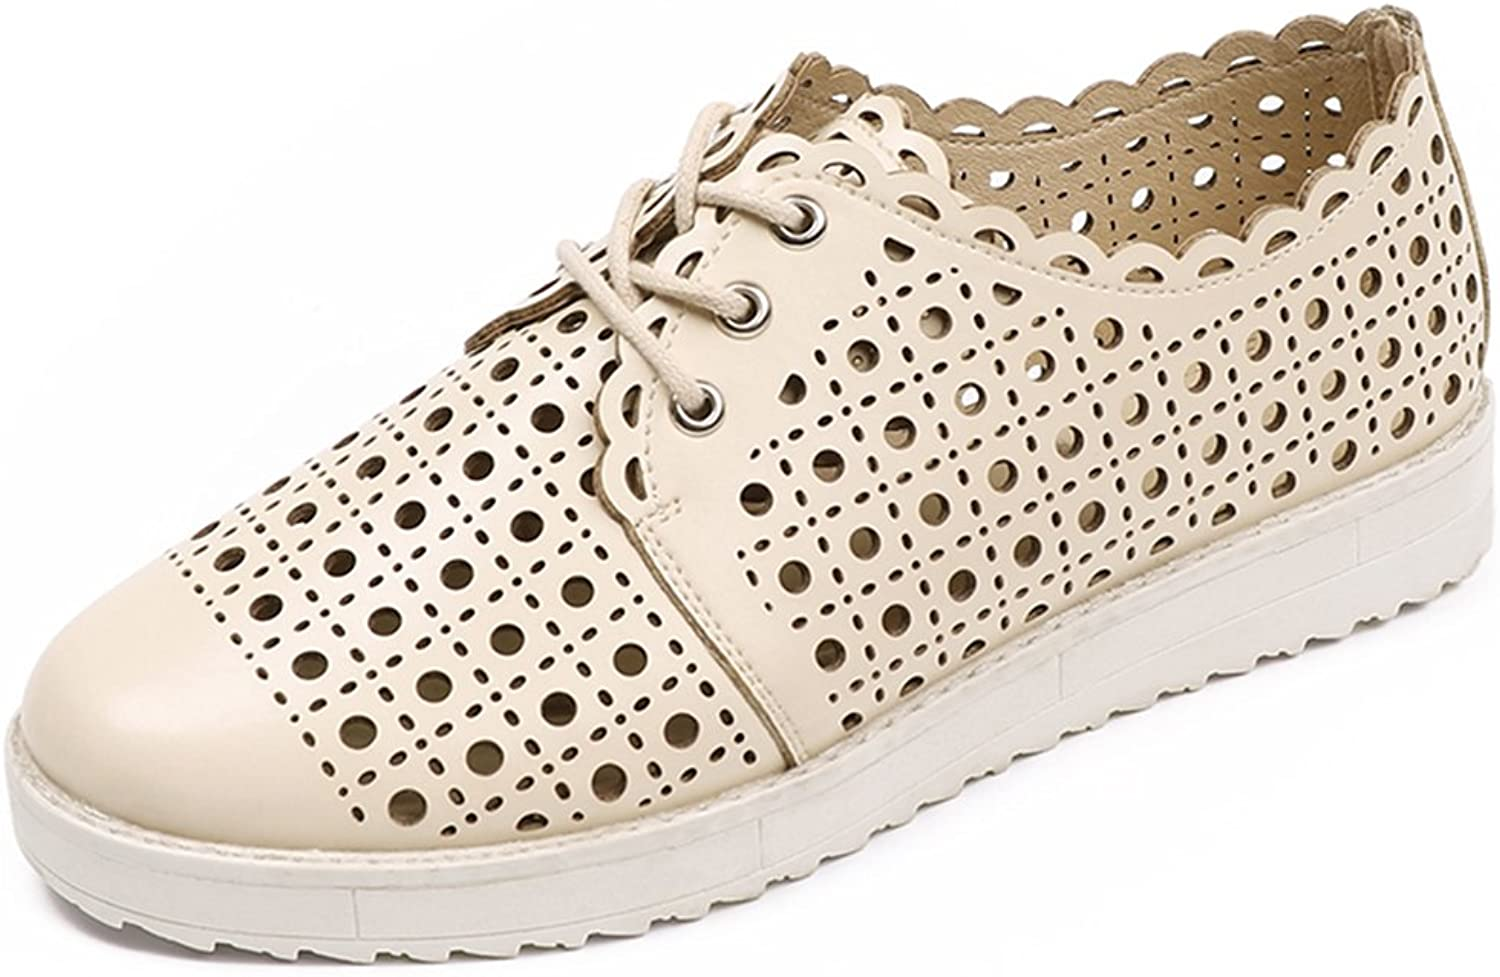 GilesJones Oxford Loafers shoes Women,Casual Moccasins Hollow Lace up Slip-On Flats shoes